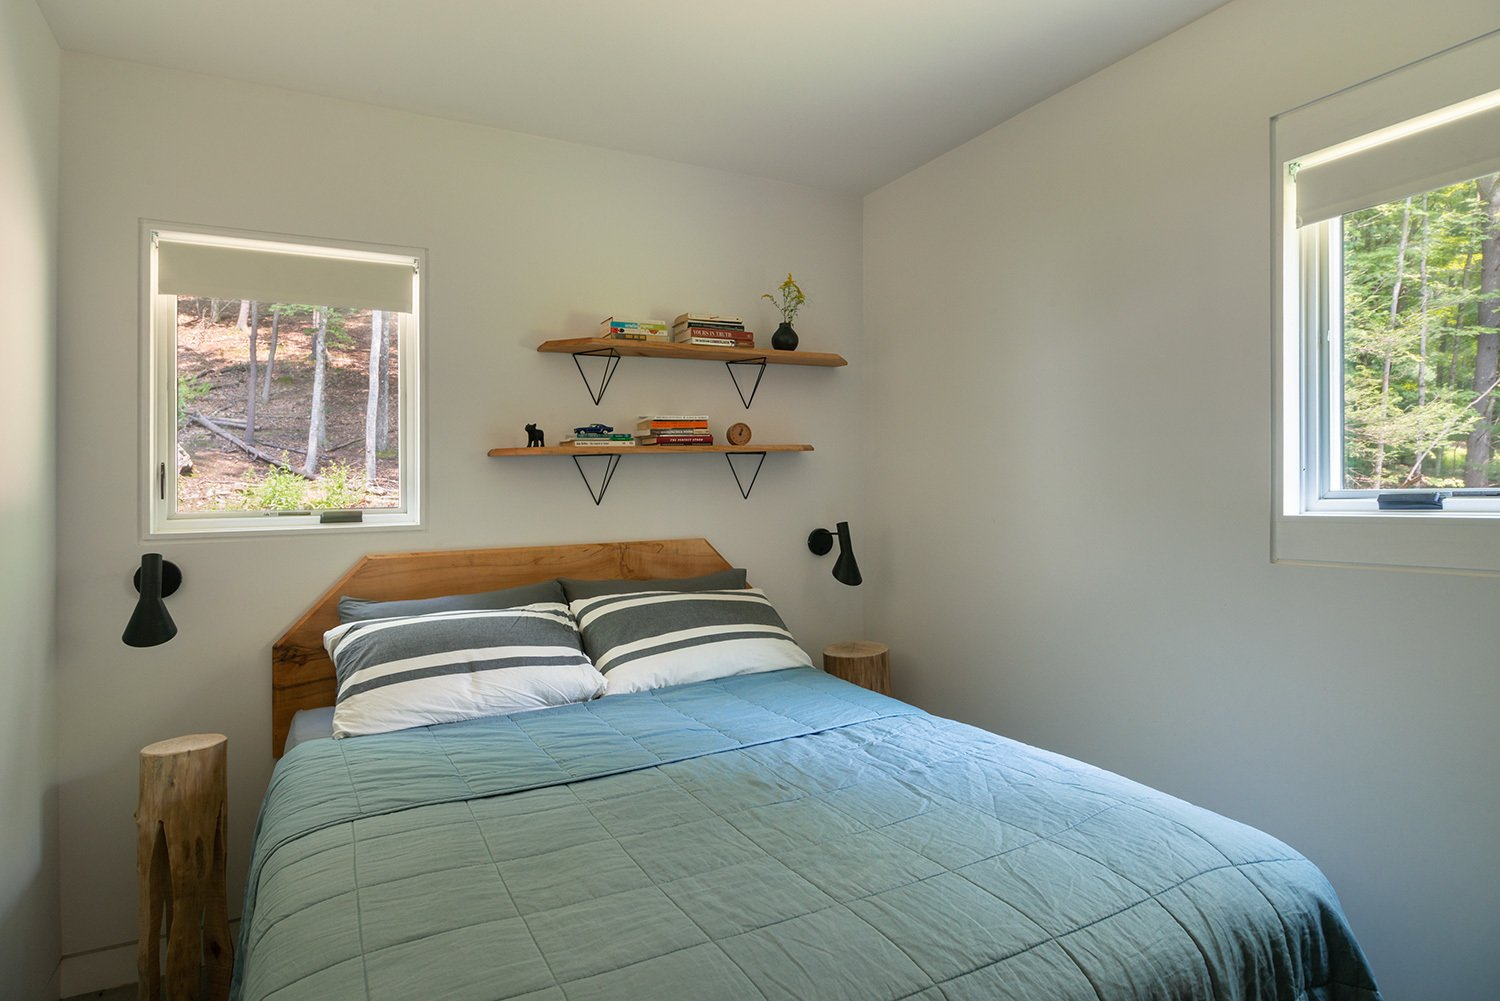 Page made the headboards and shelves out of sugar maple sourced from the property. (Bjorg Magnea)